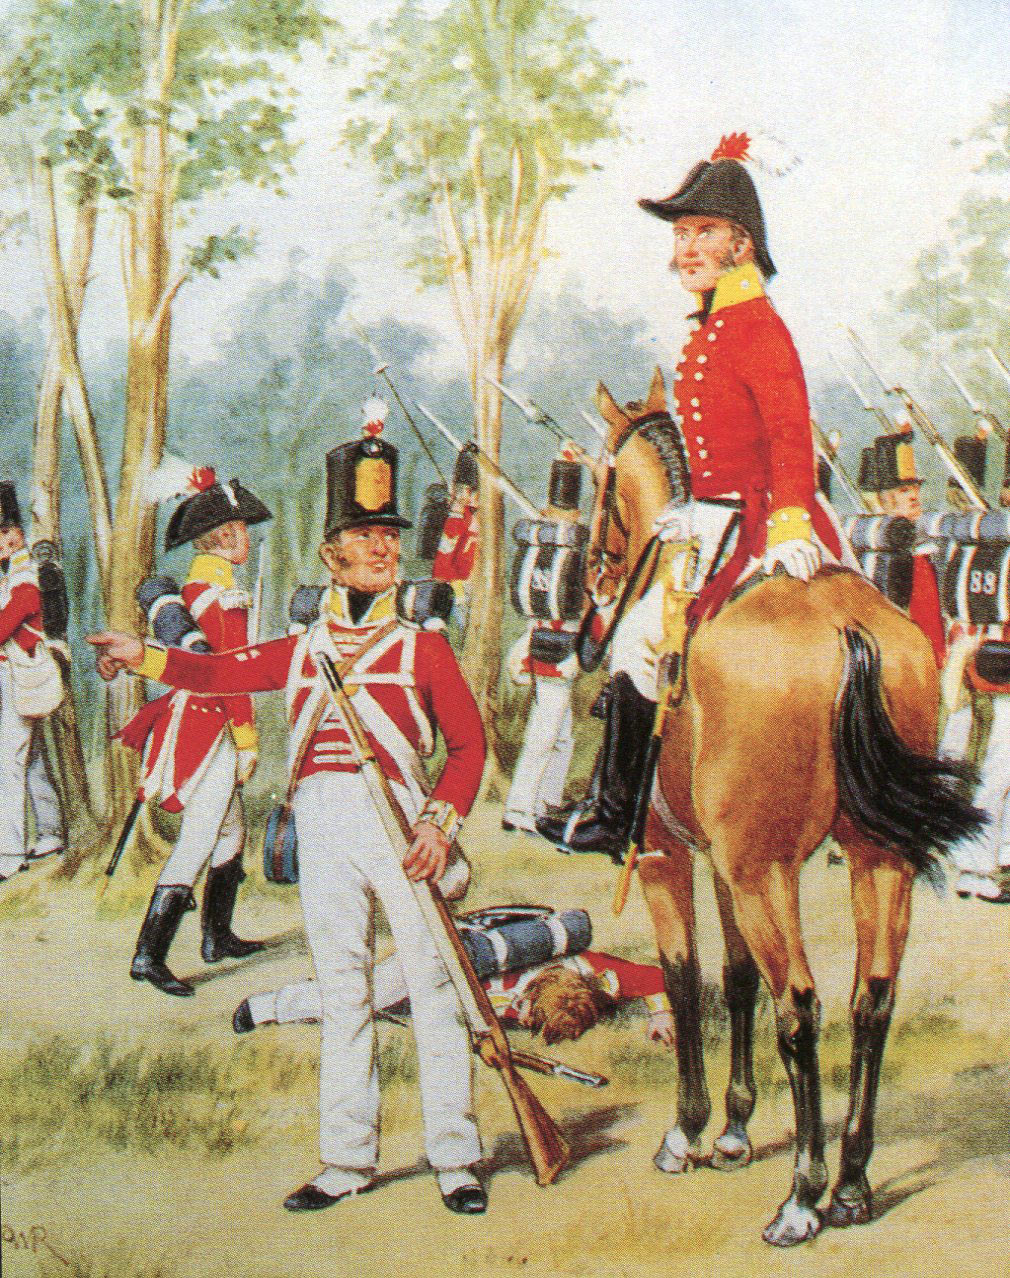 Colonel Wallace and the 88th Connaught Rangers at the Battle of Busaco on 27th September 1810 in the Peninsular